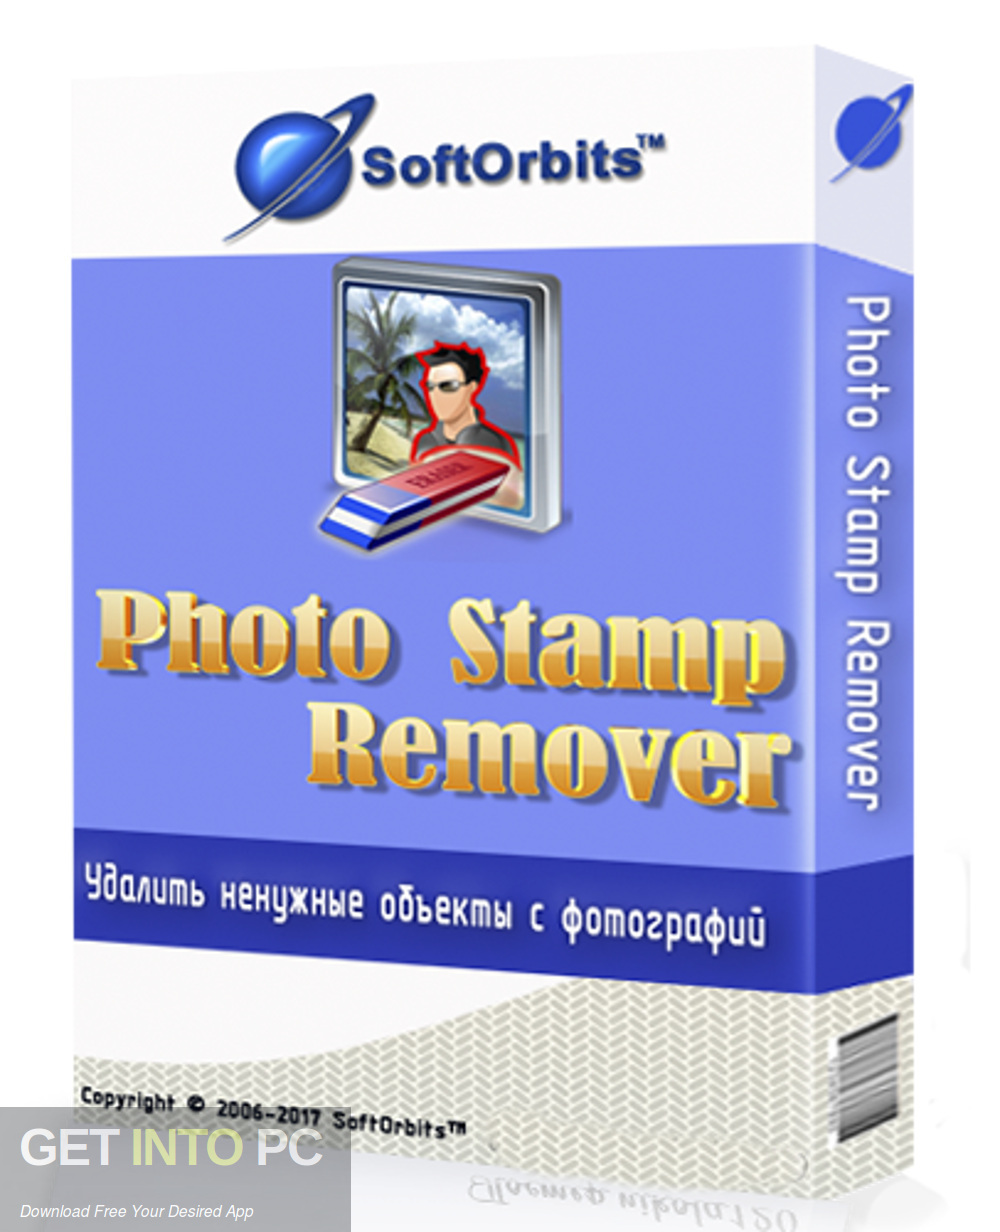 SoftOrbits Photo Stamp Remover Free Download-GetintoPC.com